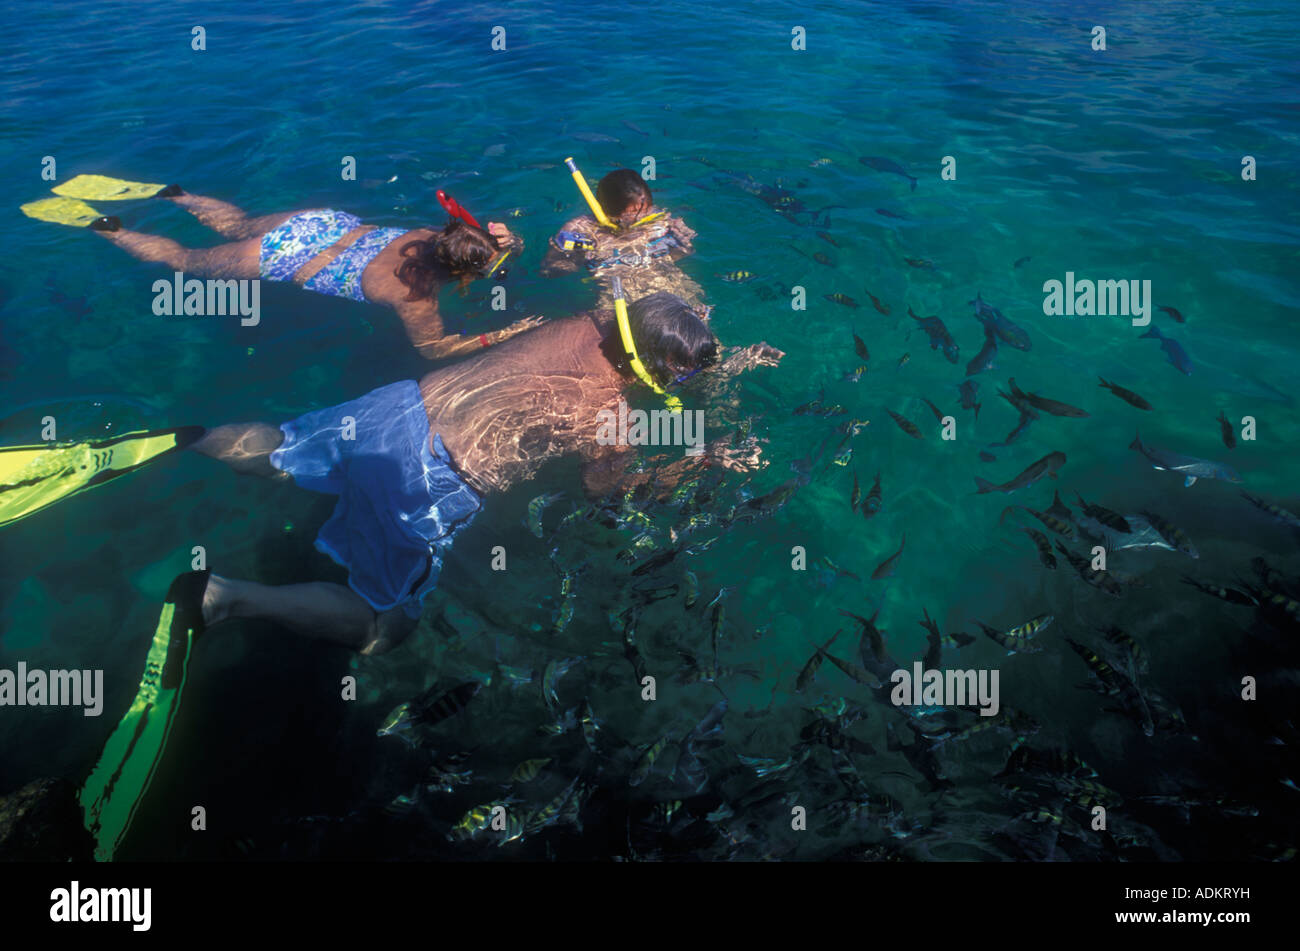 Family Snorkling In Yakul Lagoon Akumal Mexico Mayan Riviera Stock Photo, Royalty Free Image ...